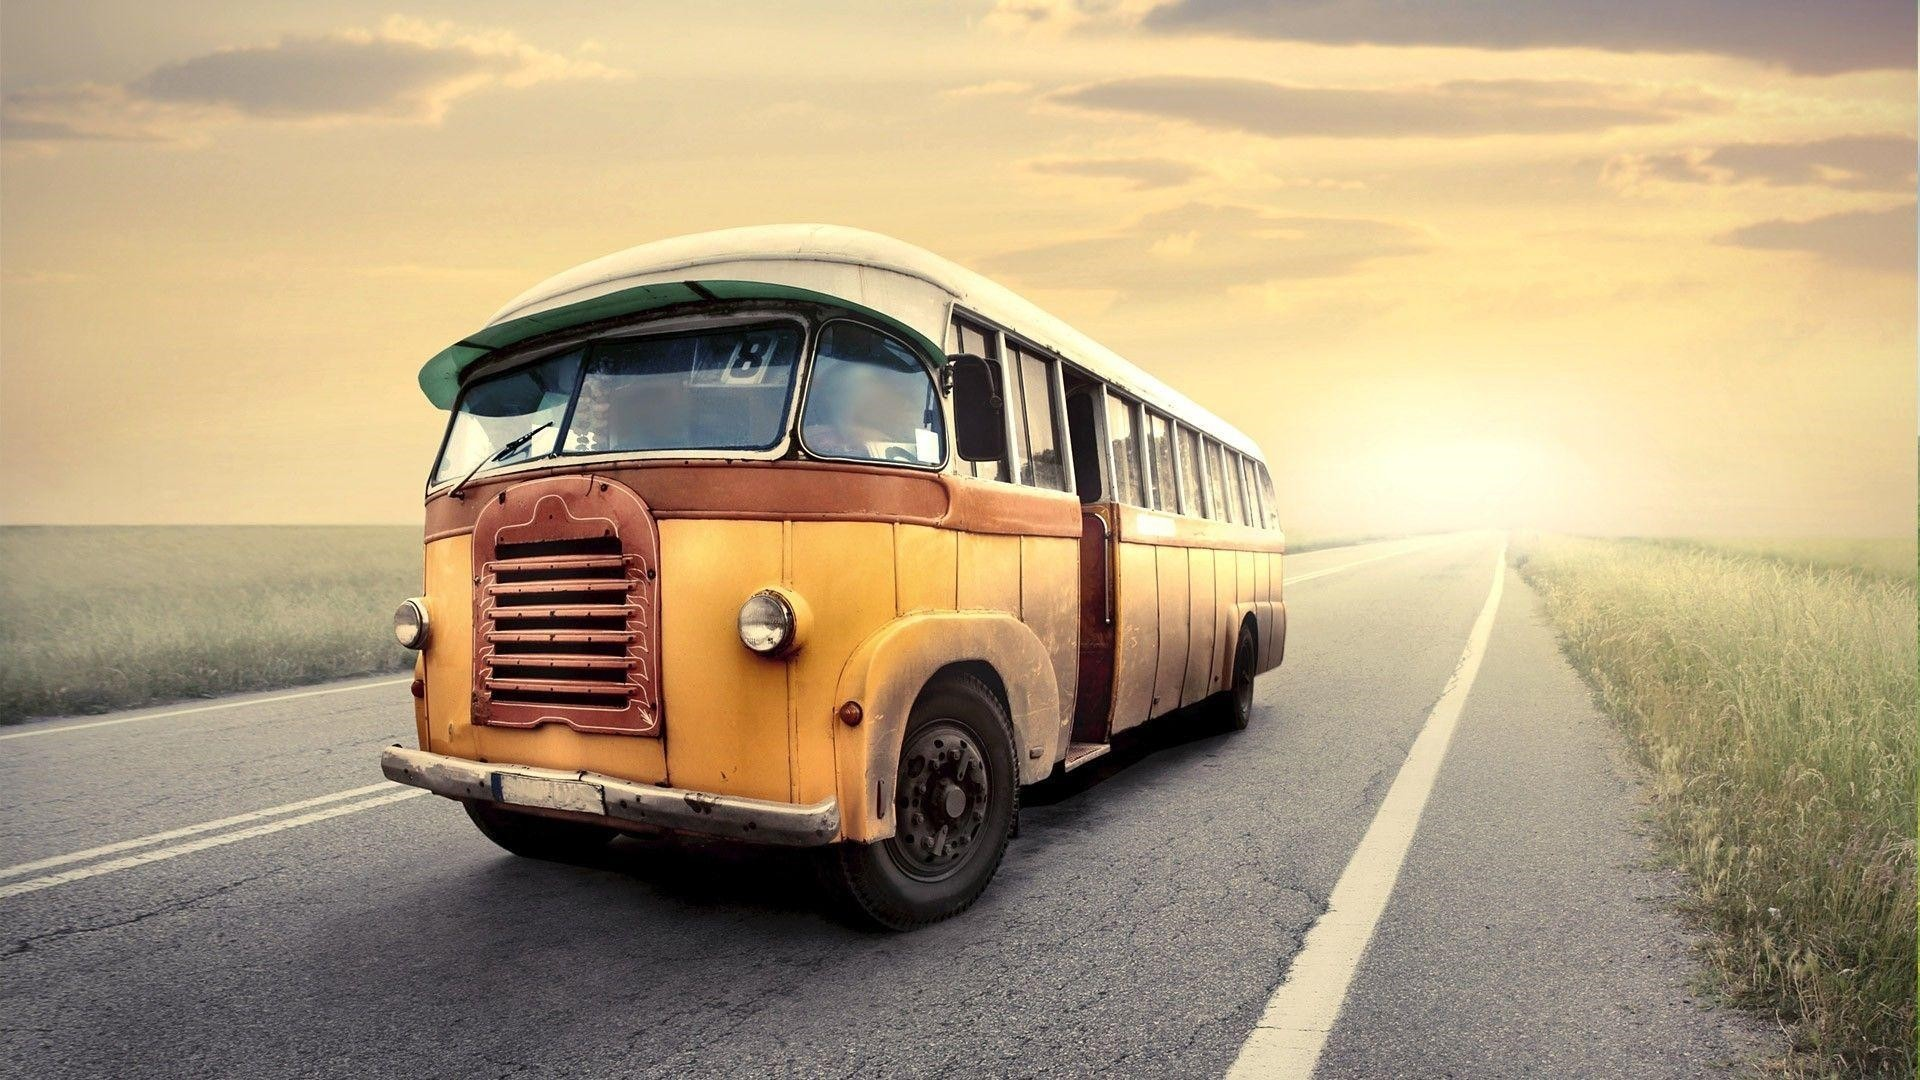 Old Bus HD Wallpaper